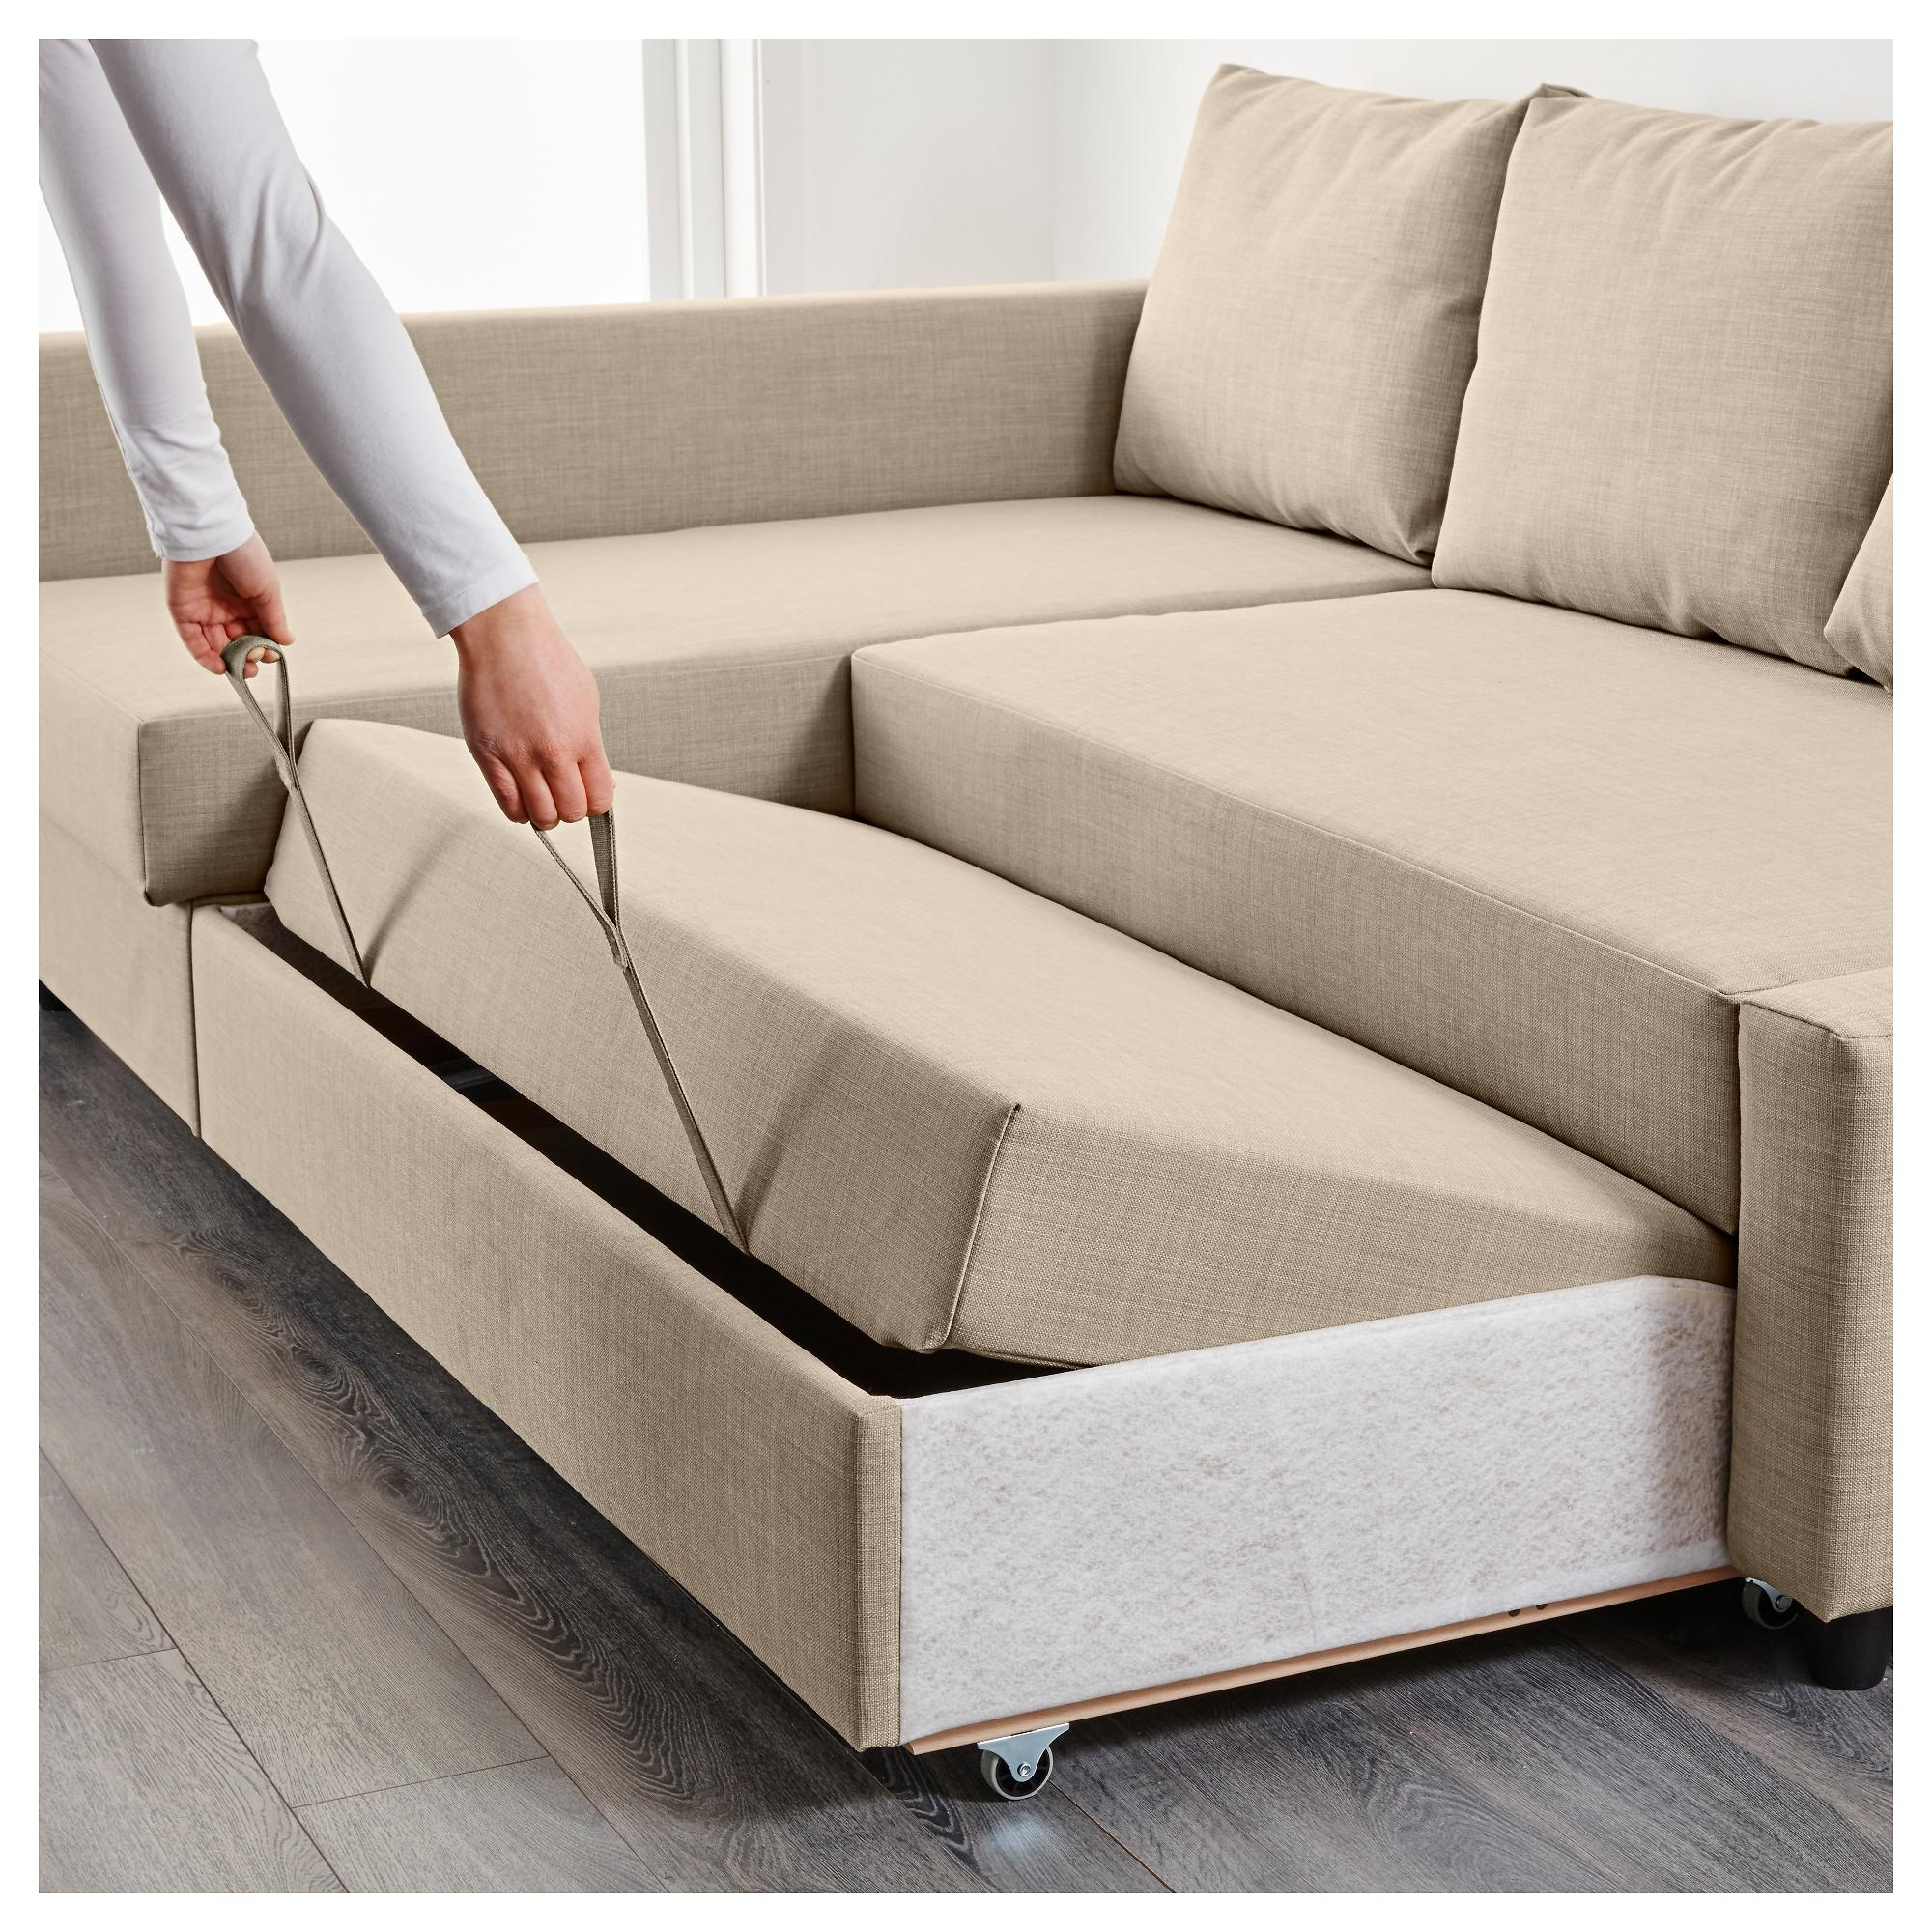 Friheten Corner Sofa Bed With Storage Skiftebo Beige – Ikea In Storage Sofas Ikea (Image 6 of 20)